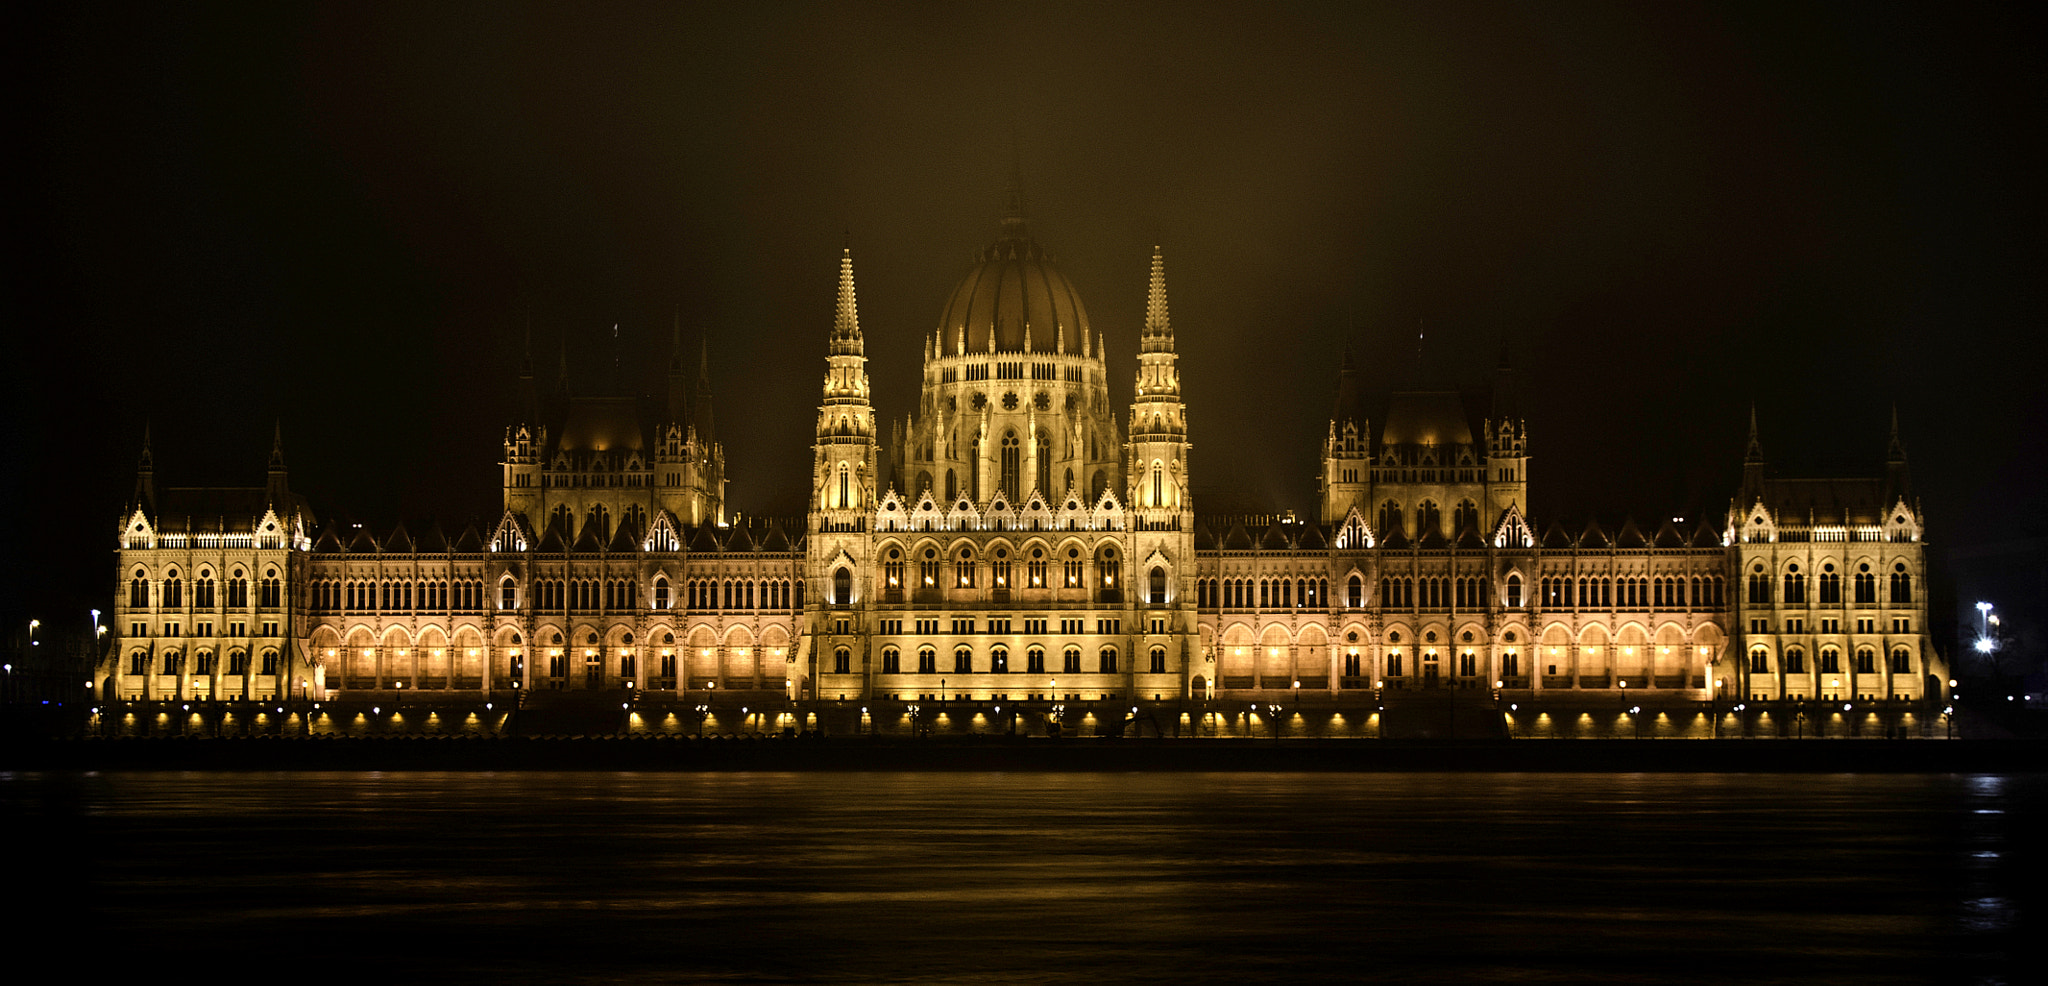 Photograph Night Budapest,parlament by Михаил Осадчий on 500px